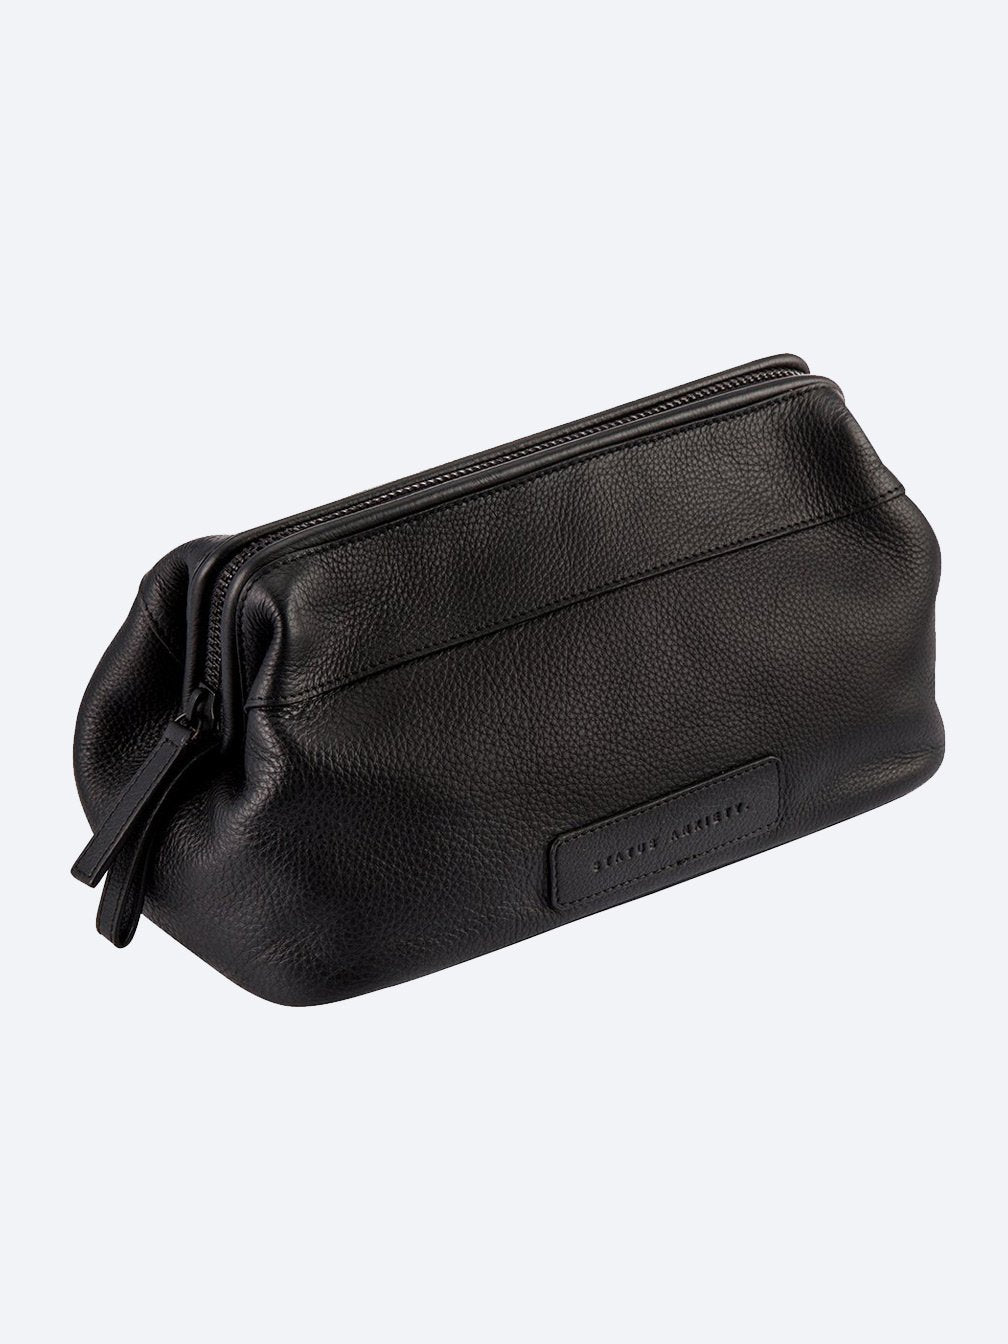 Yeltuor - STATUS ANXIETY - BAGS - STATUS ANXIETY LIABILITY TOILETRIES BAG - BLACK -  N/A